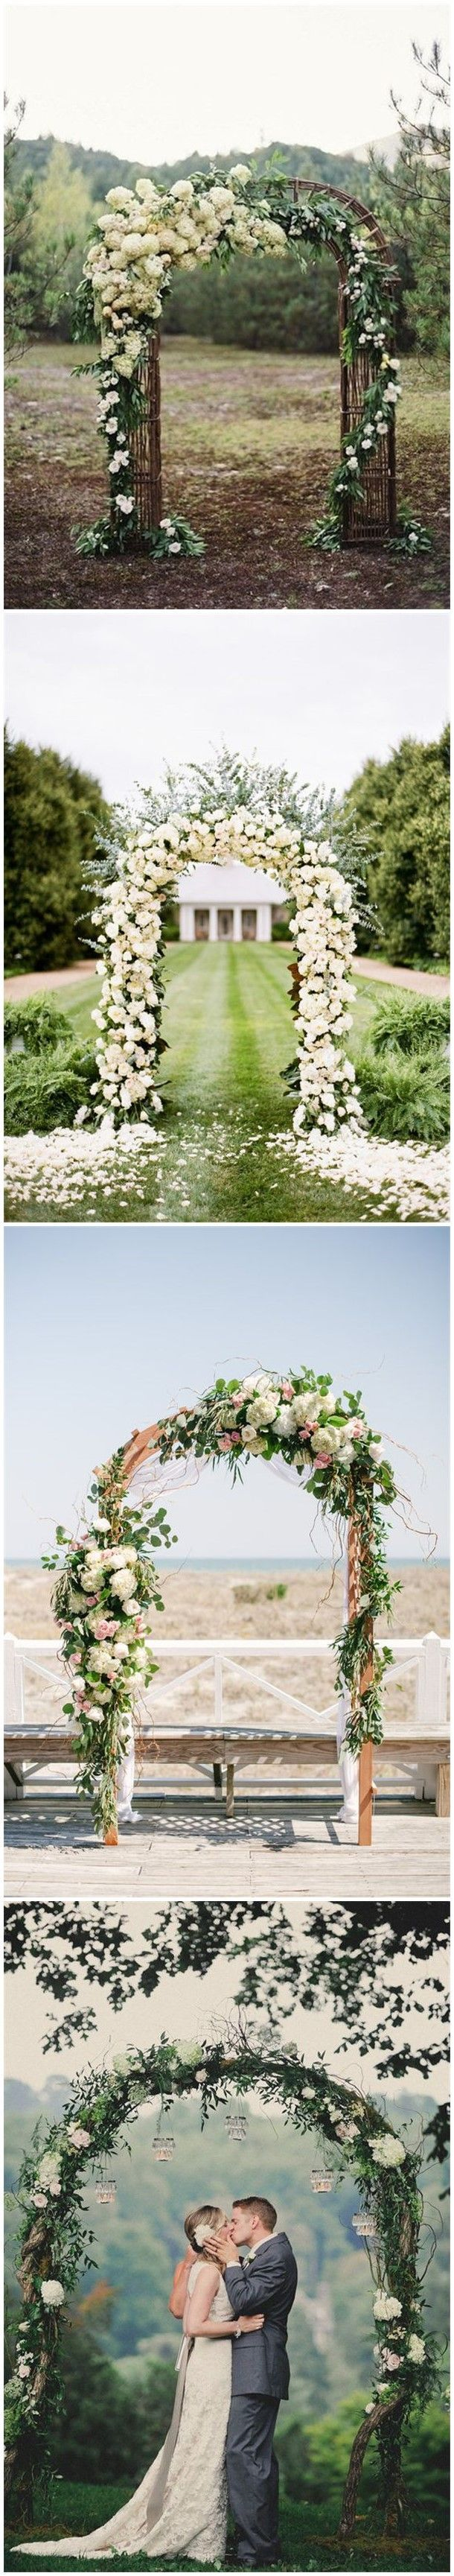 25 best ideas about rustic wedding arches on pinterest for Arch ideas for home